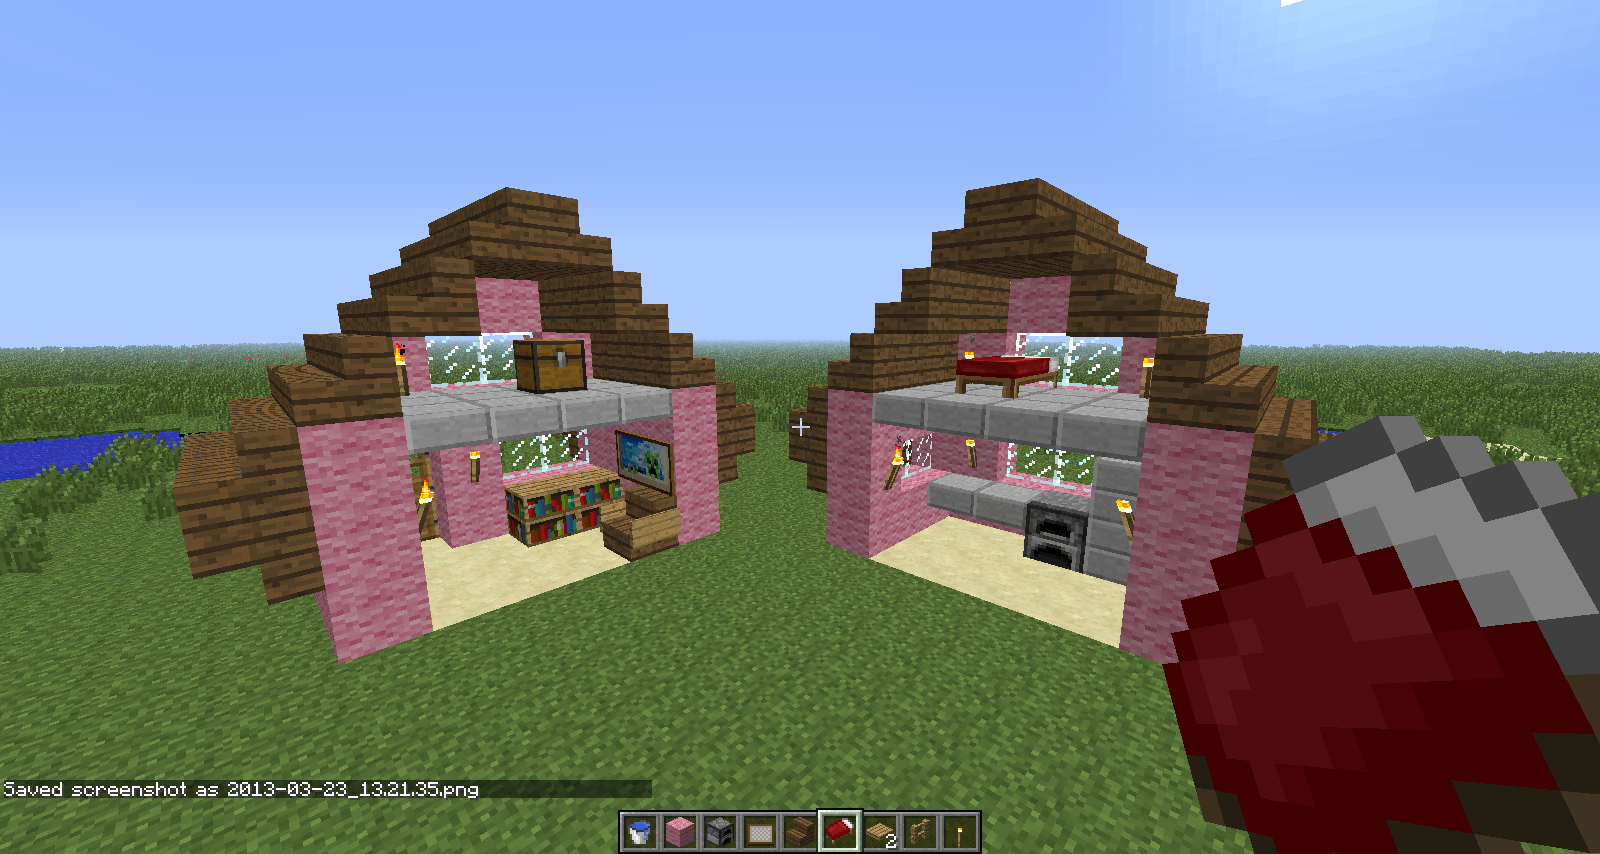 minecraft ideas unorthodox minecraft yes this doll house design began in minecraft